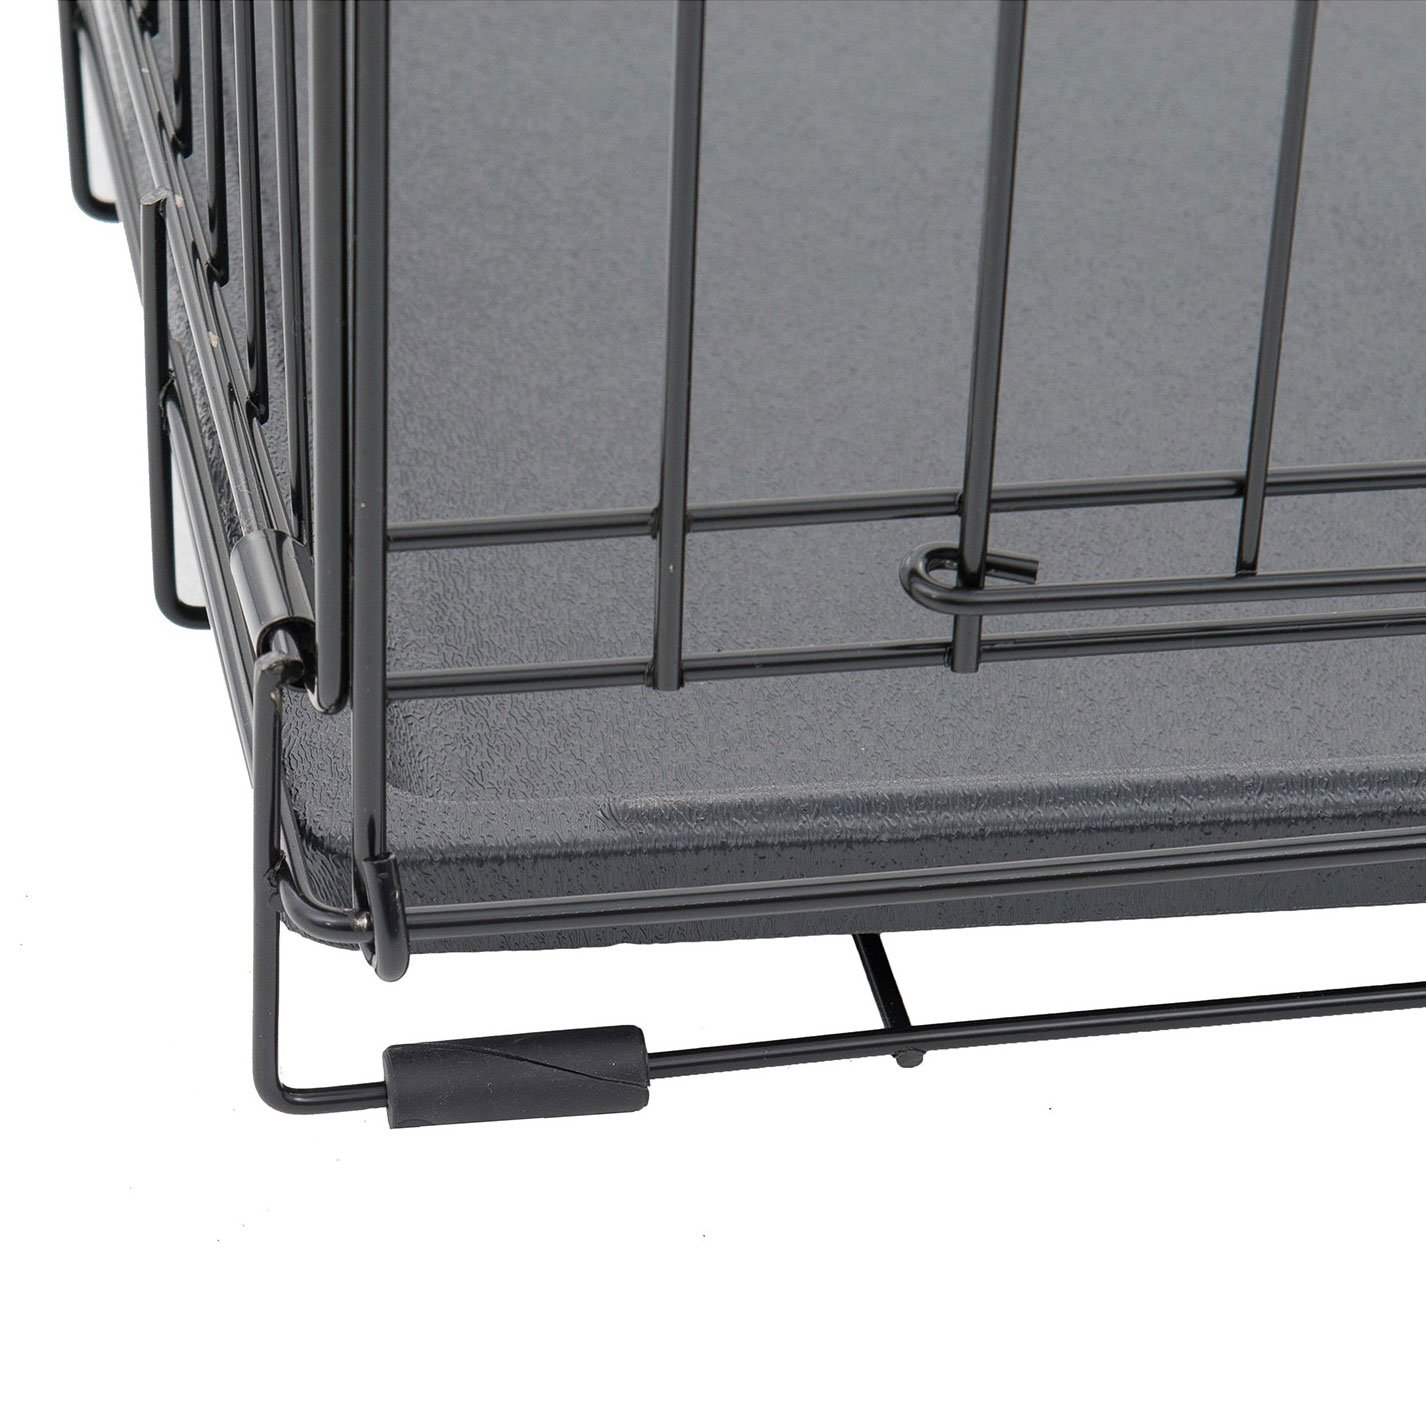 Lucky Dog 2 Door Dog Kennel (24-inch) by Lucky Dog (Image #2)